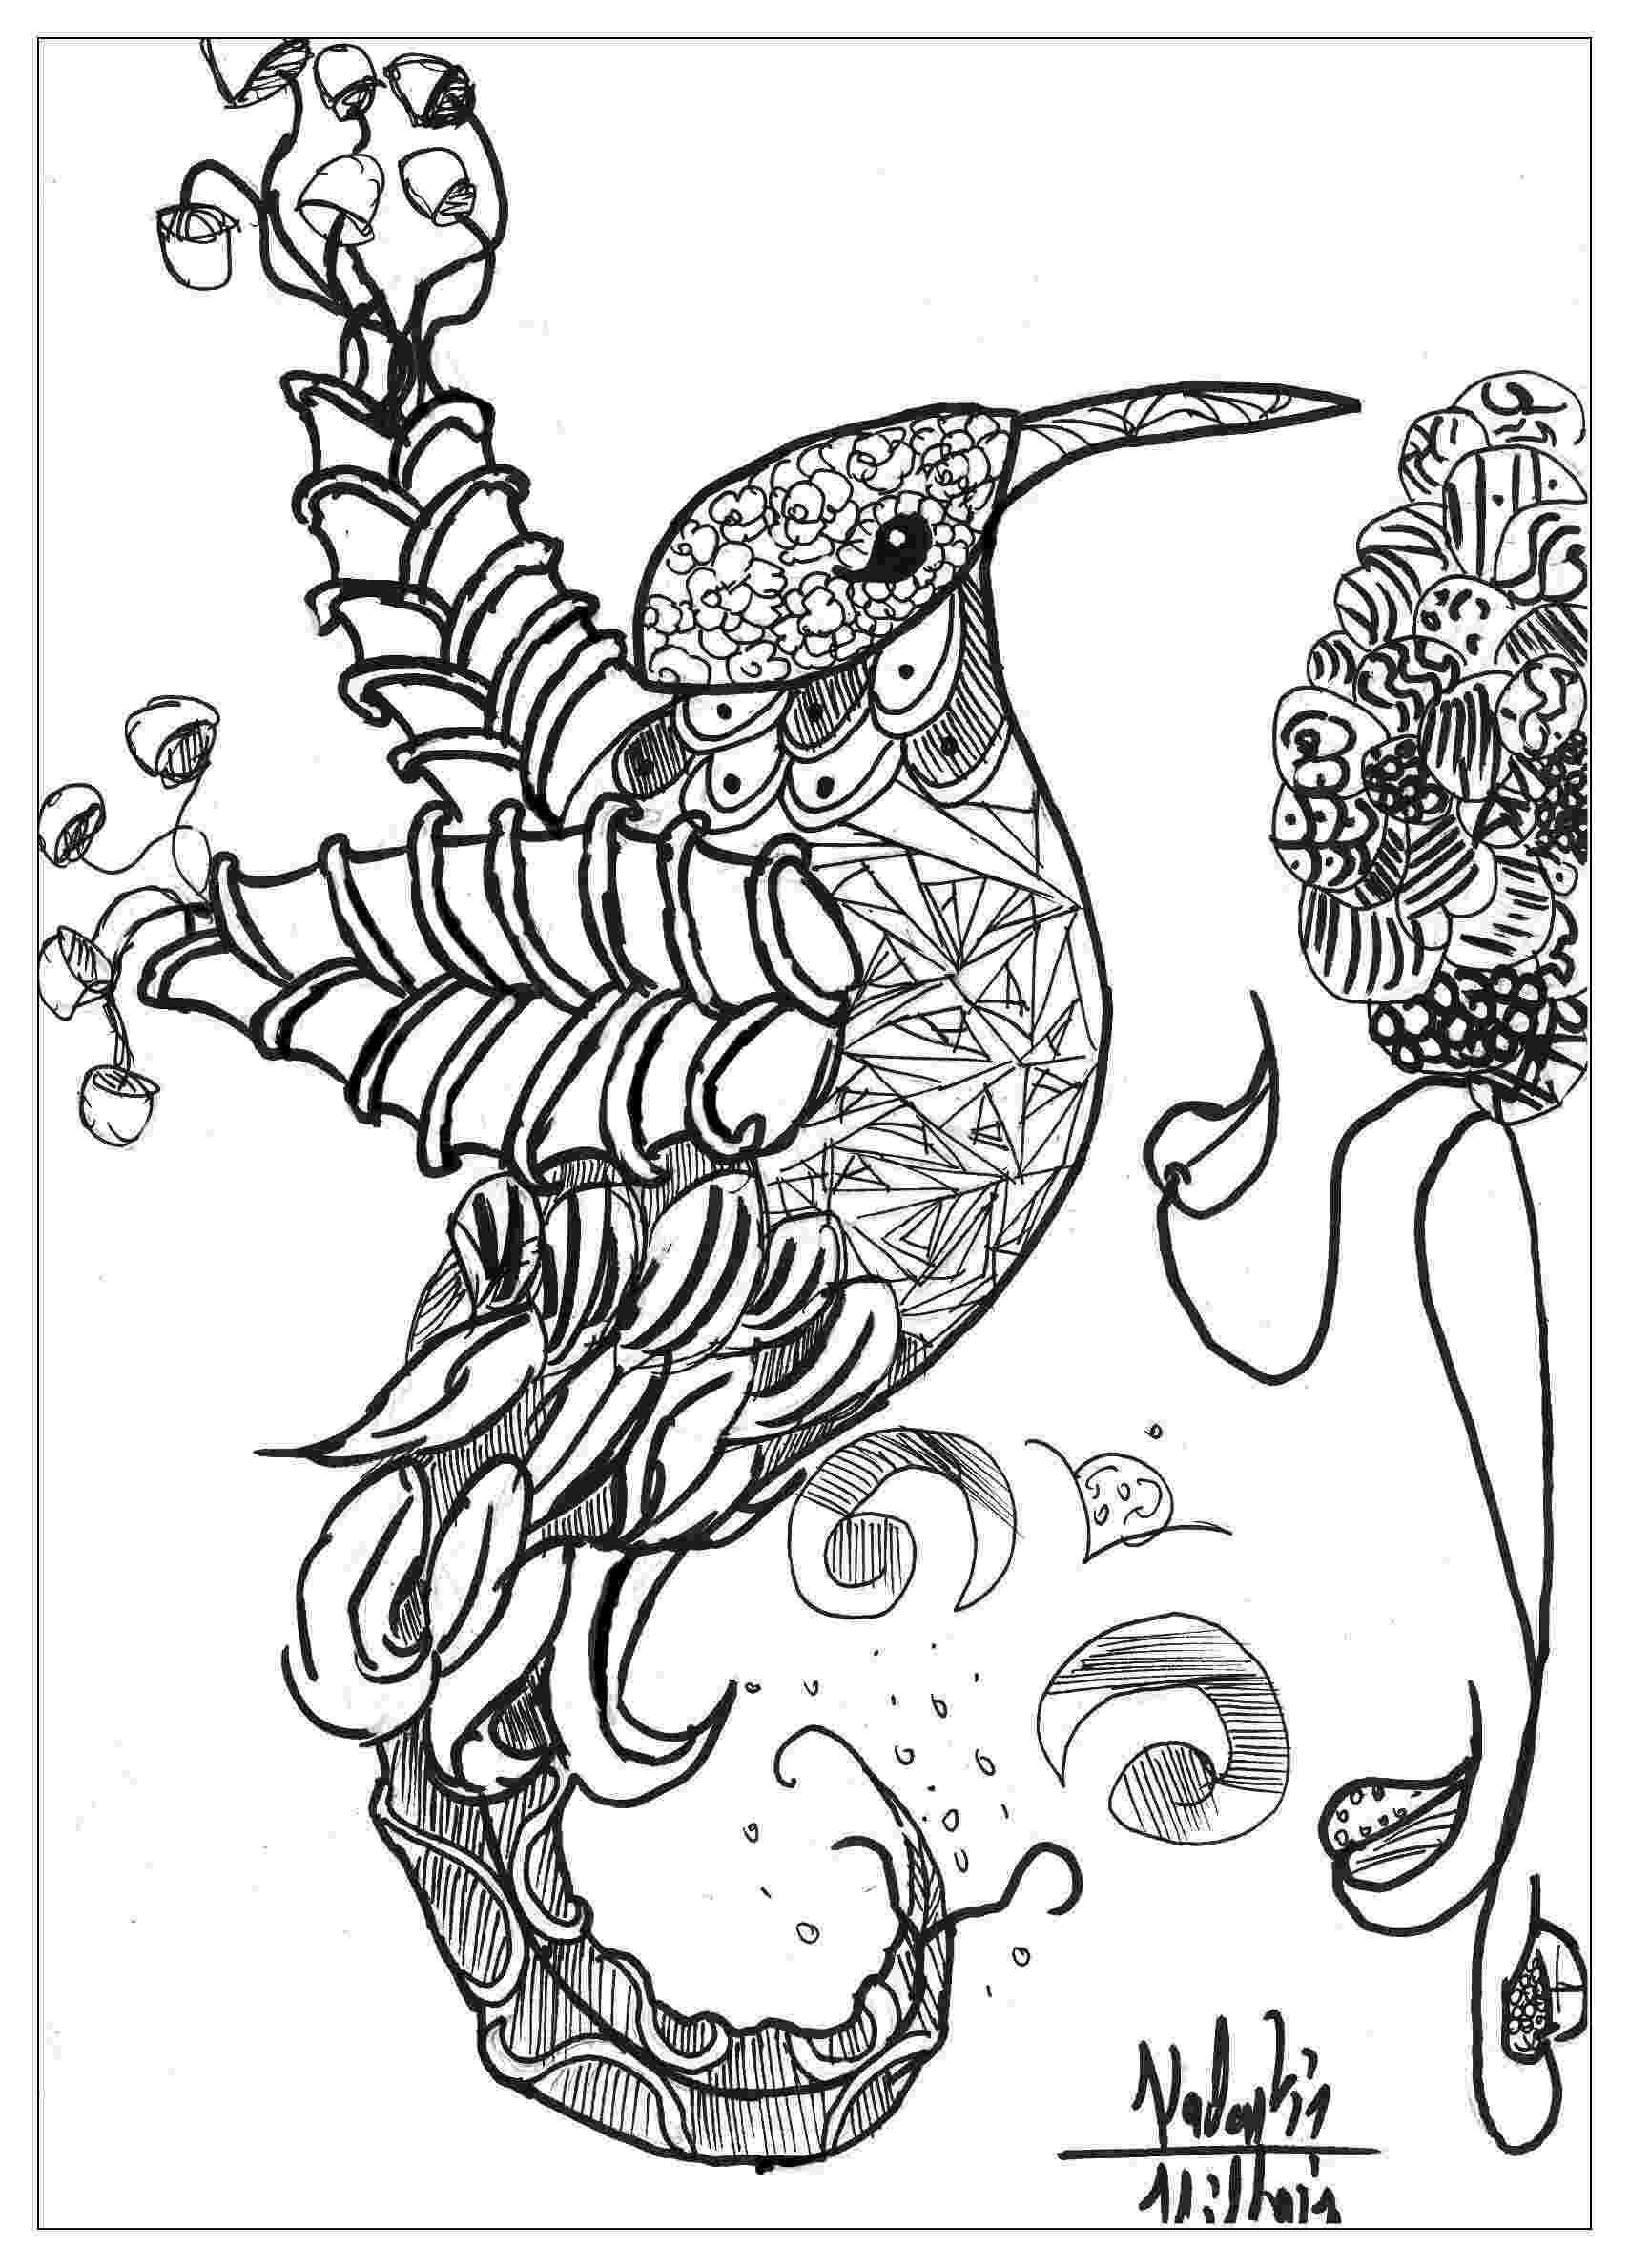 animal pictures coloring pages animal coloring pages best coloring pages for kids pictures coloring animal pages